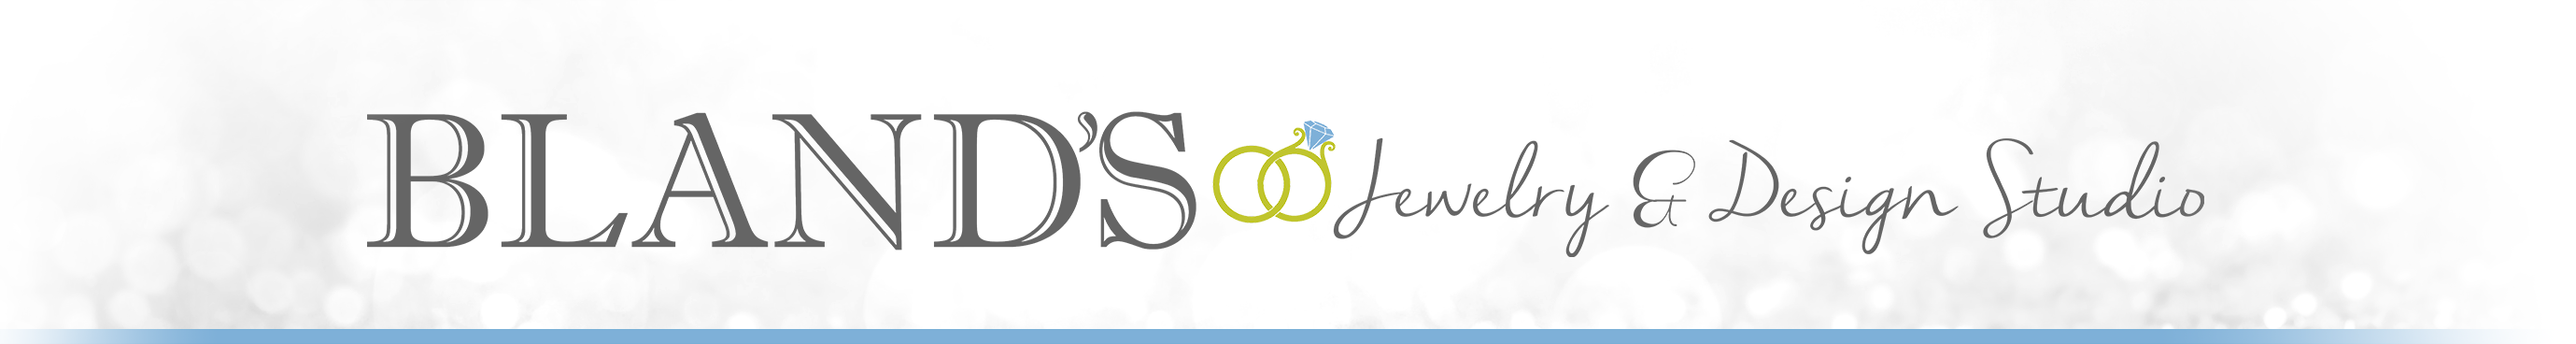 Bland's Jewelry and Design Studio Logo